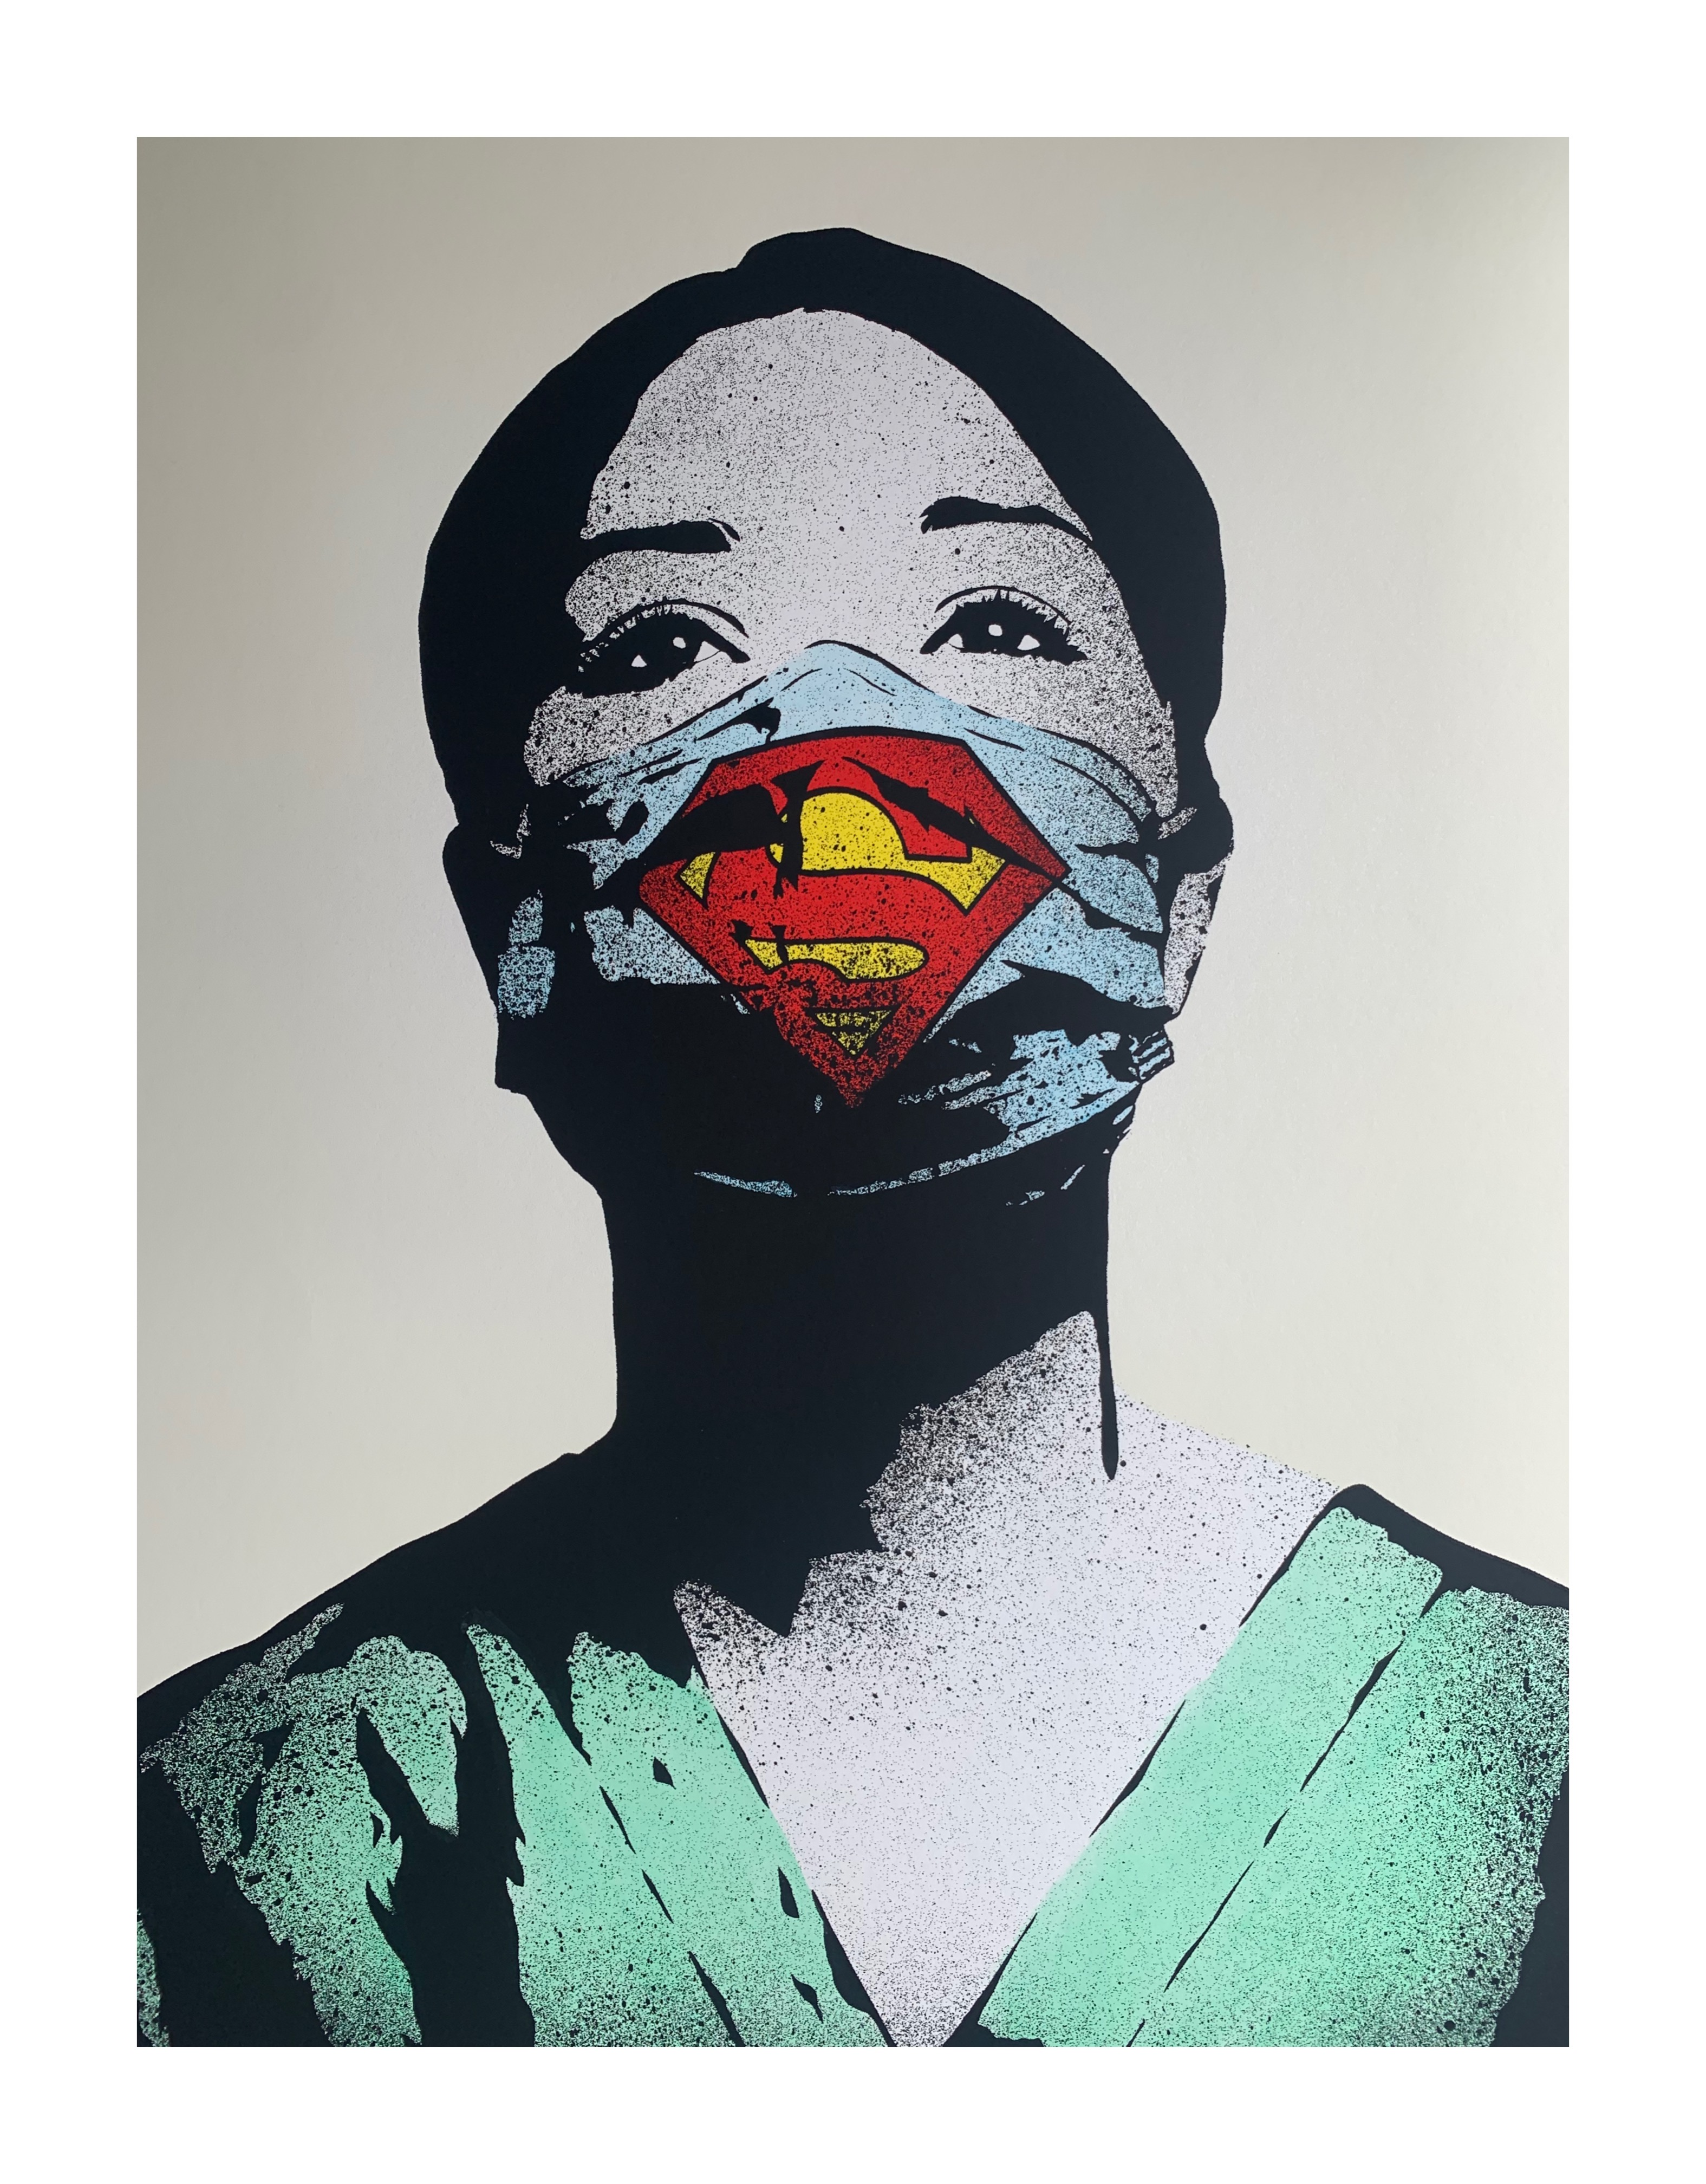 FAKE 'SUPER NURSE' (NUMBER ERROR, THEREFORE UNIQUE, FULL PROVENANCE FROM ARTIST ) - Image 2 of 9